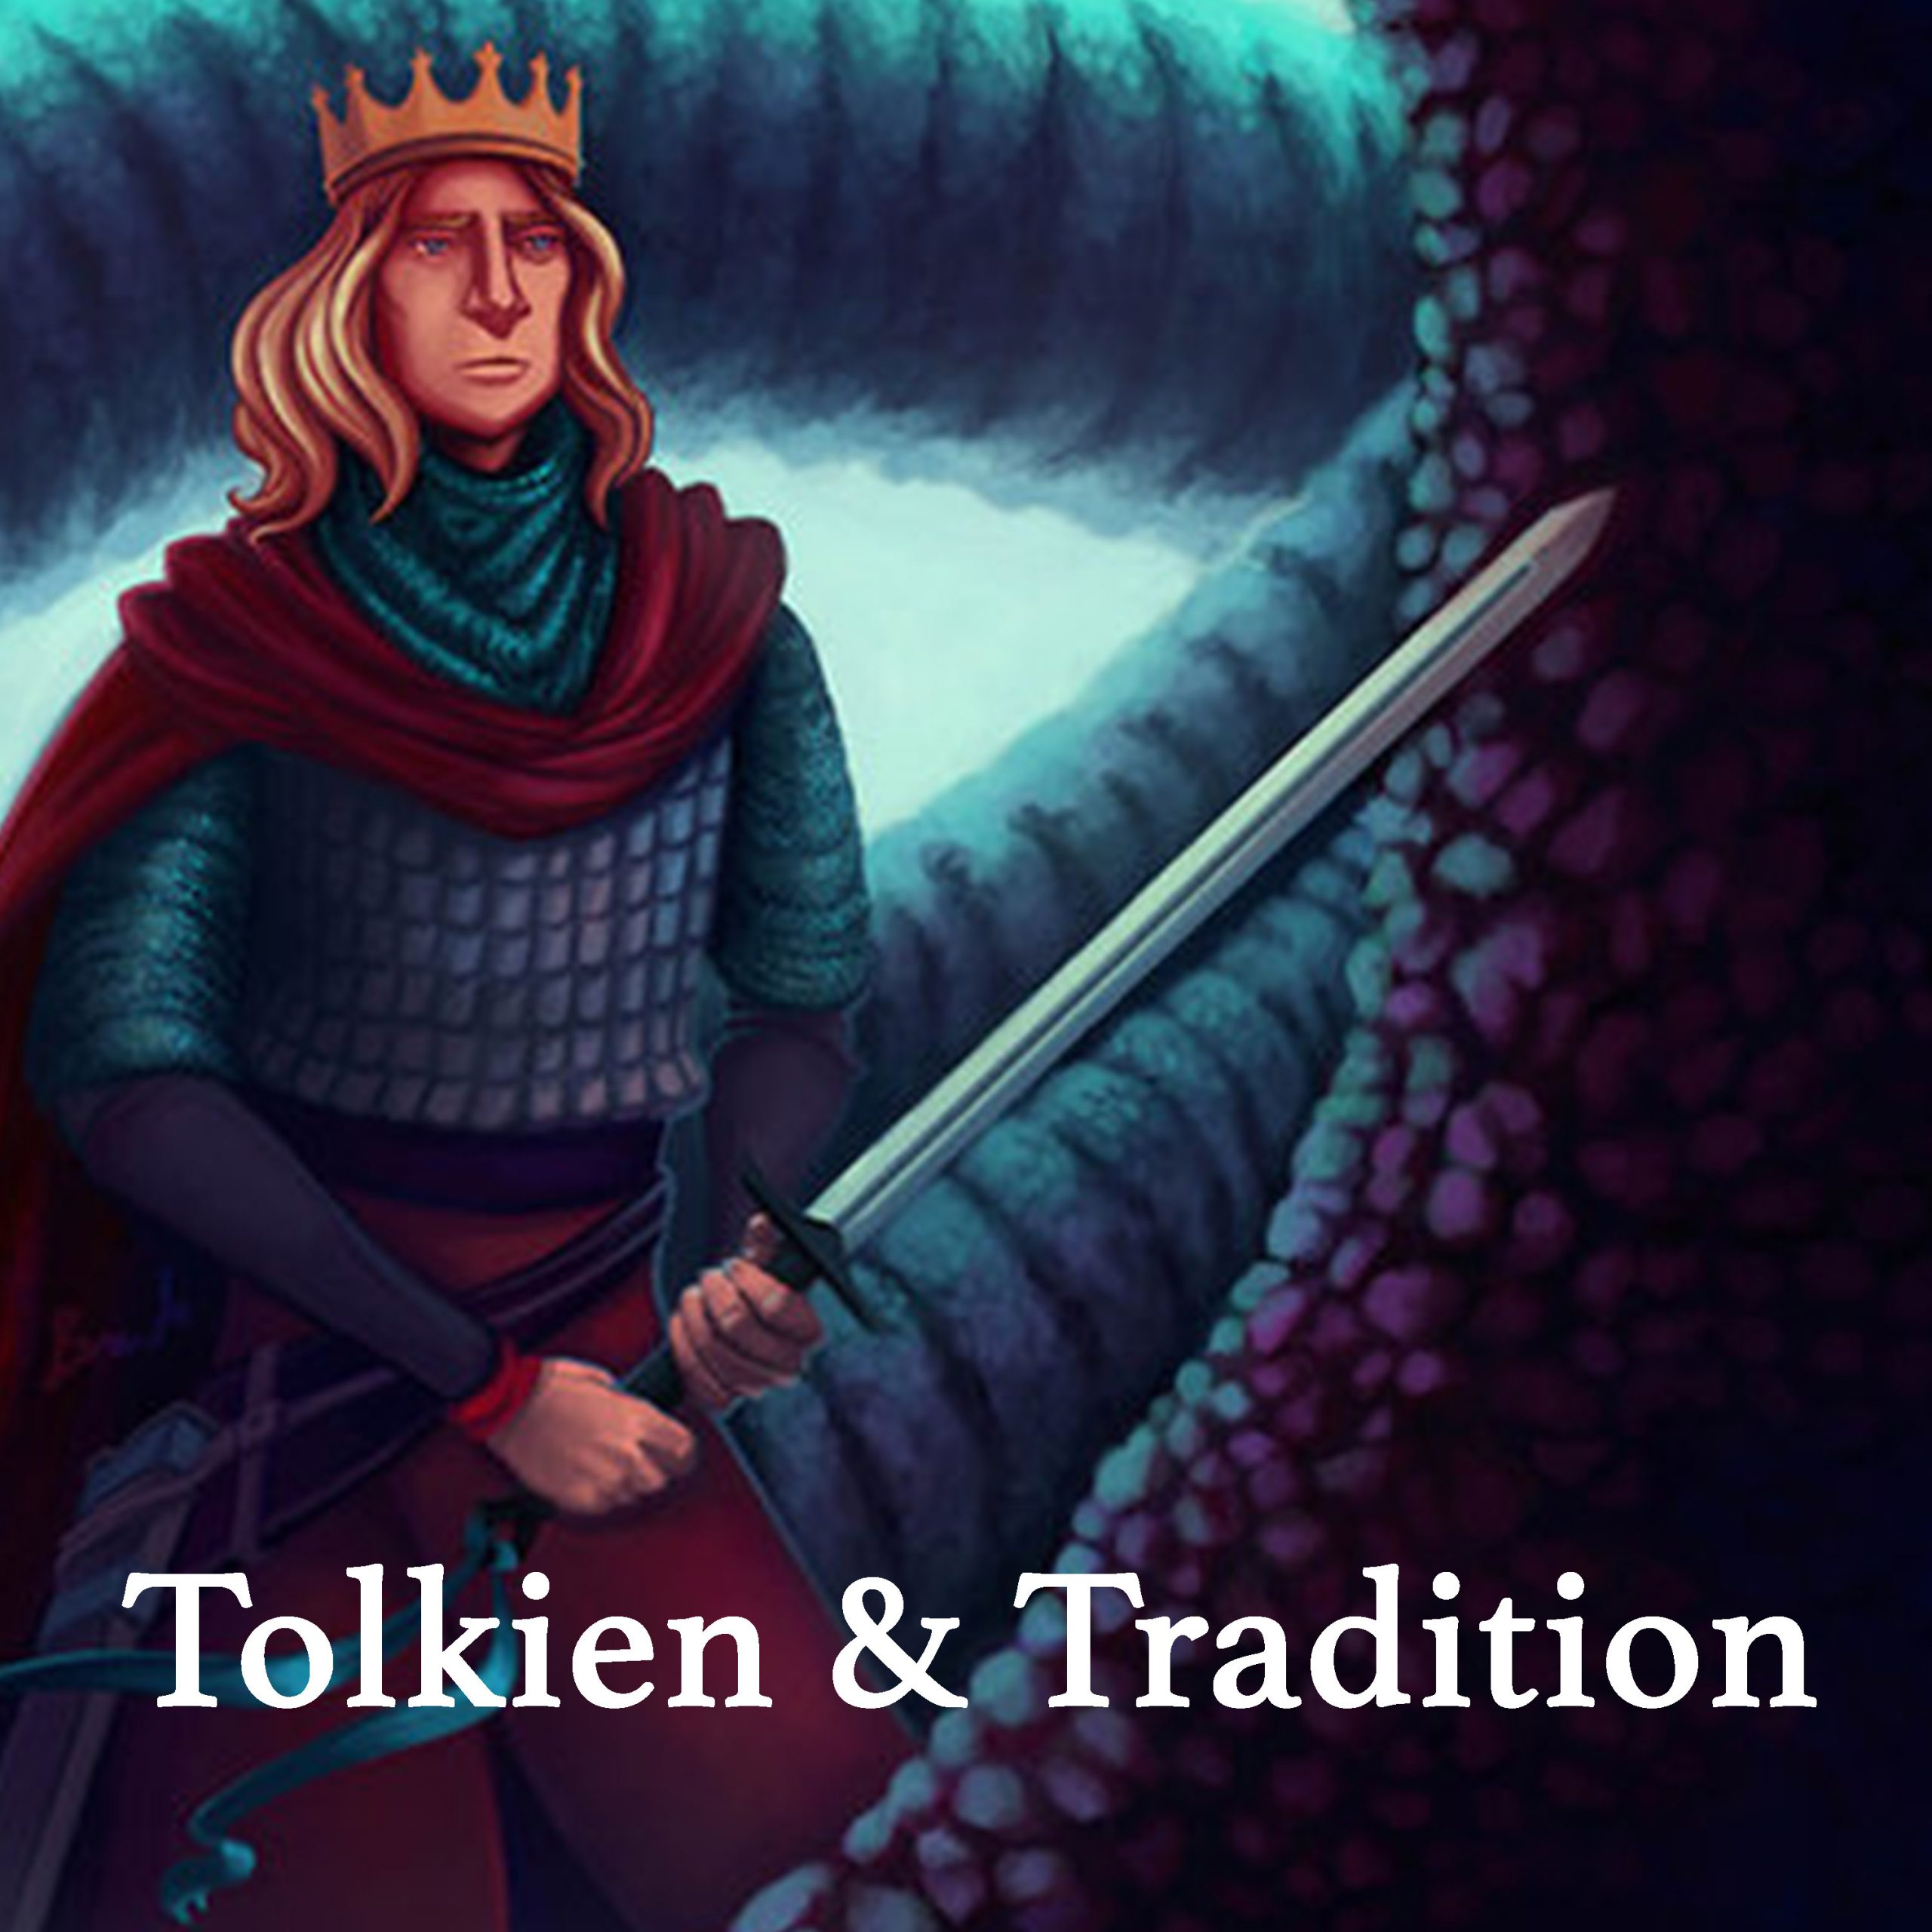 Tolkien & Tradition